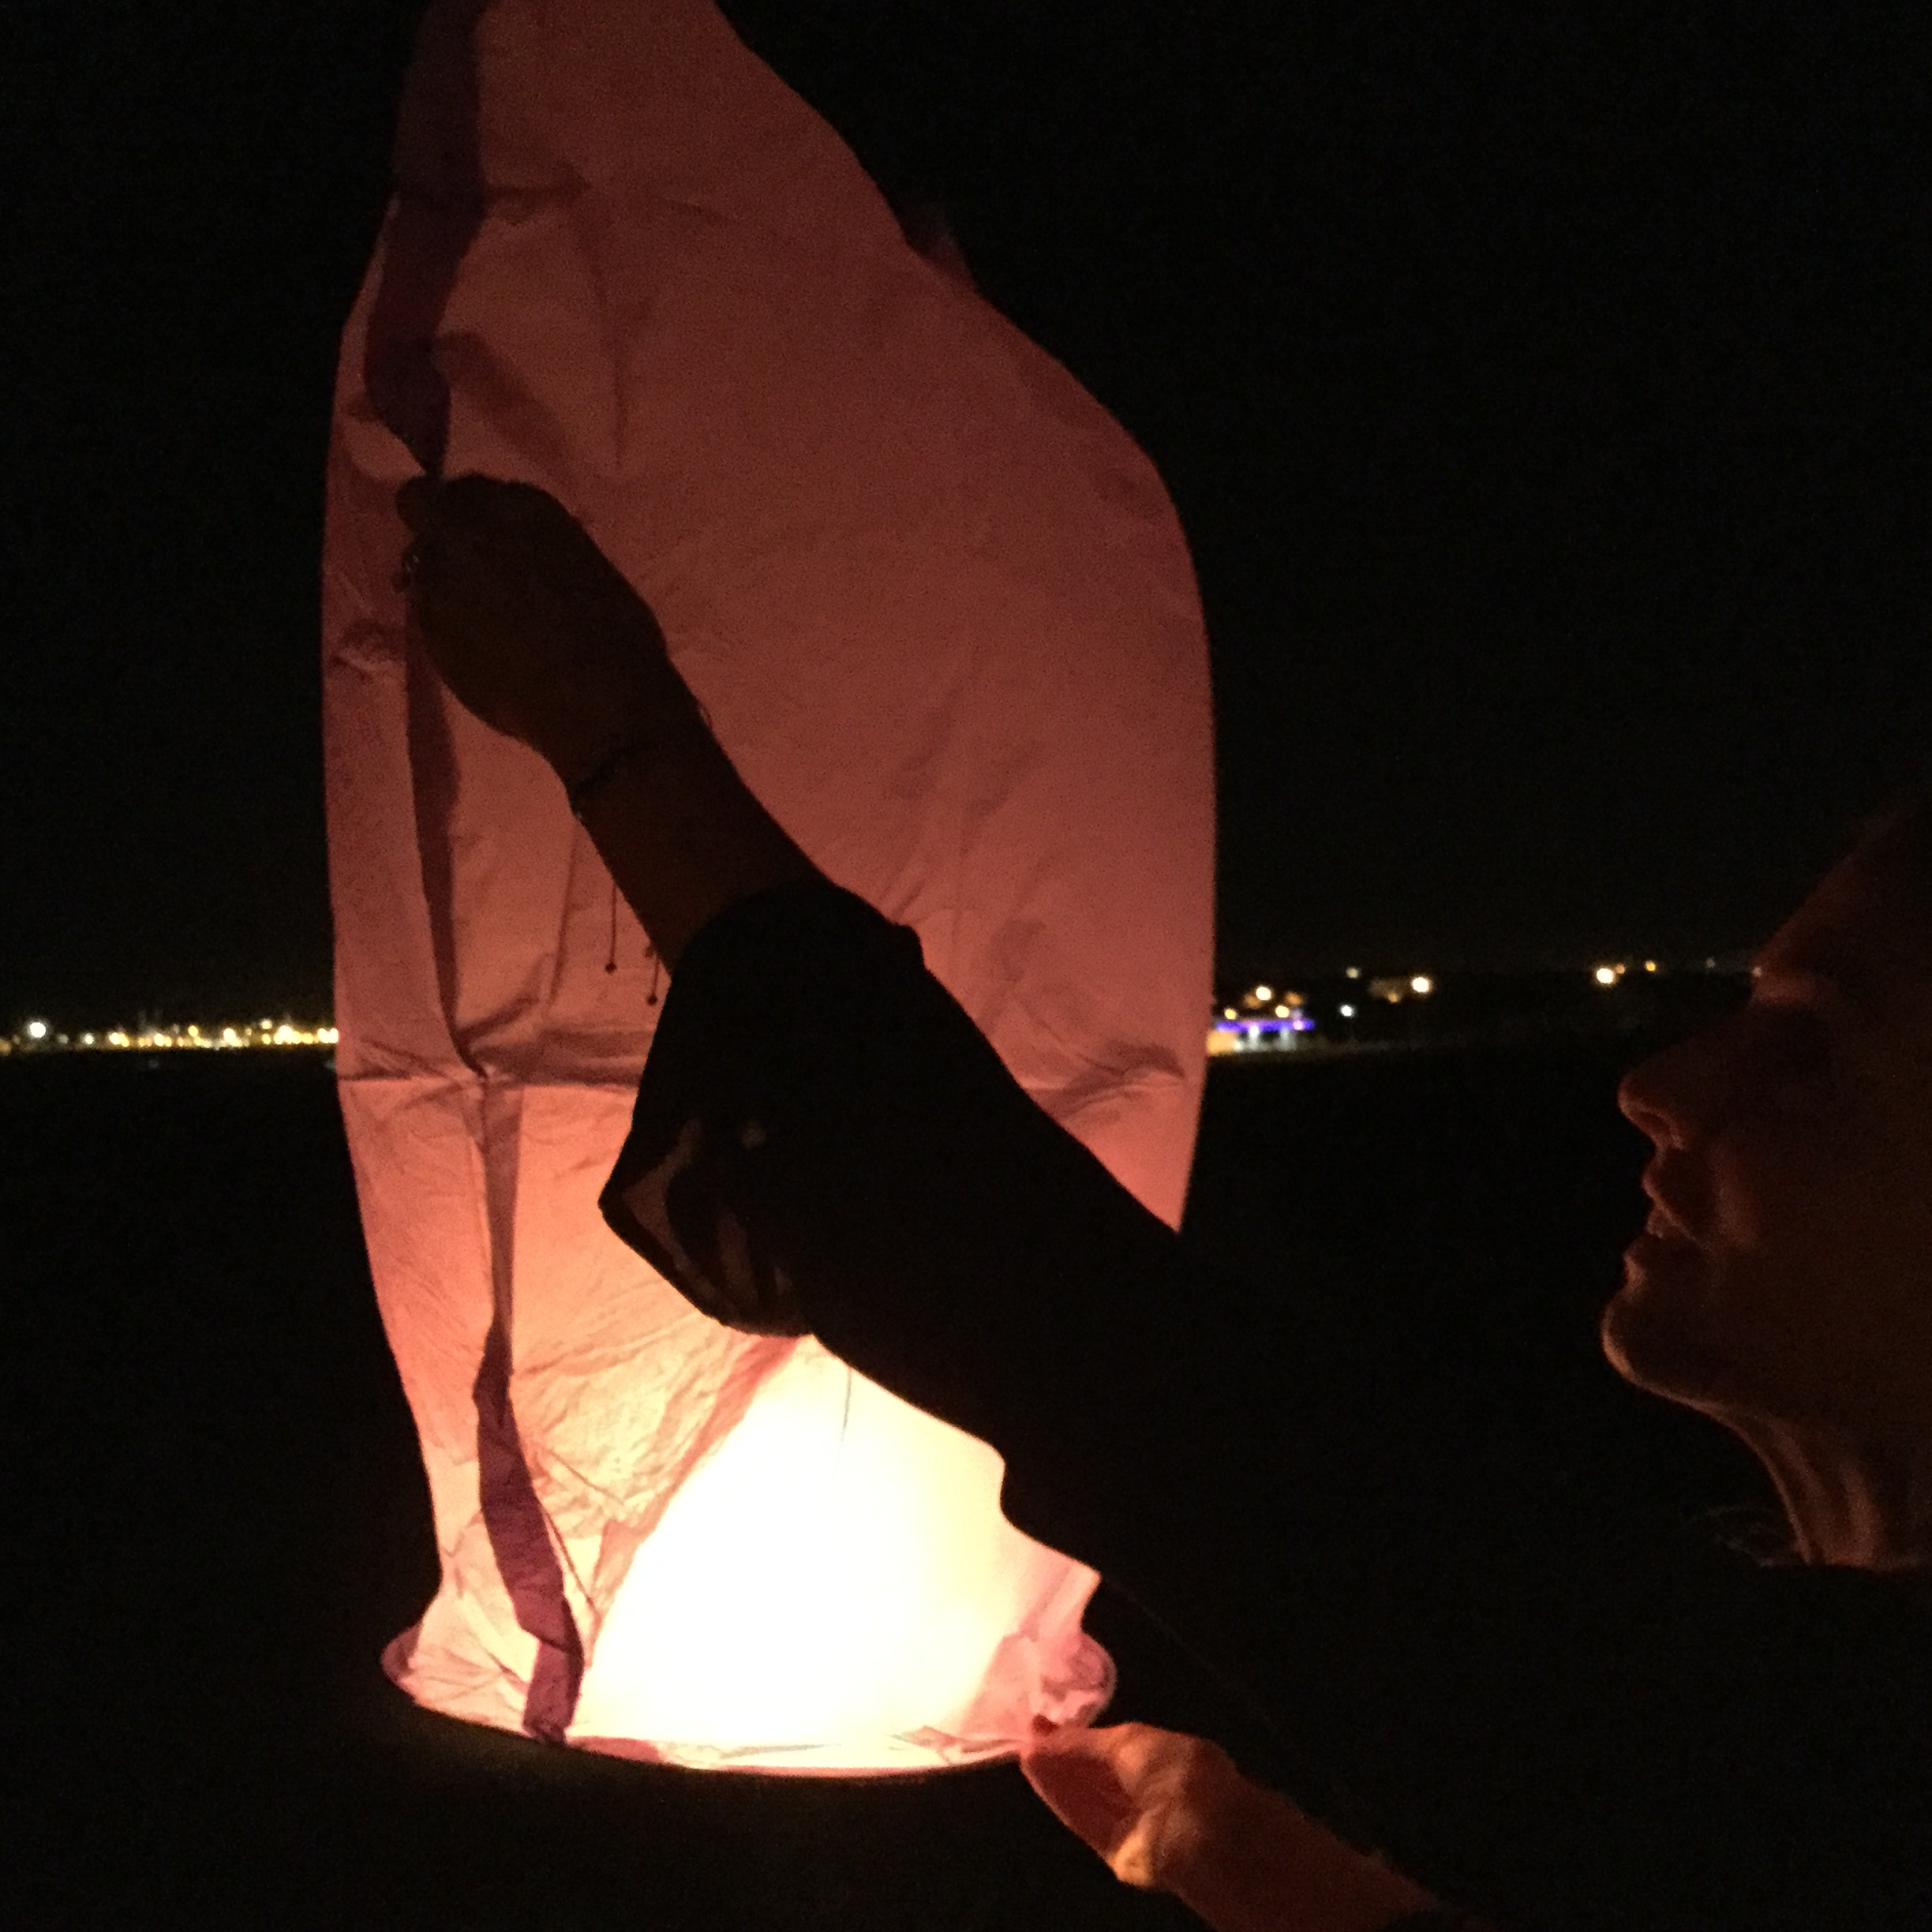 At the end of the evening there was an absolutely wonderful moment when we released eight paper lanterns to the sky from the roof patio of the house.